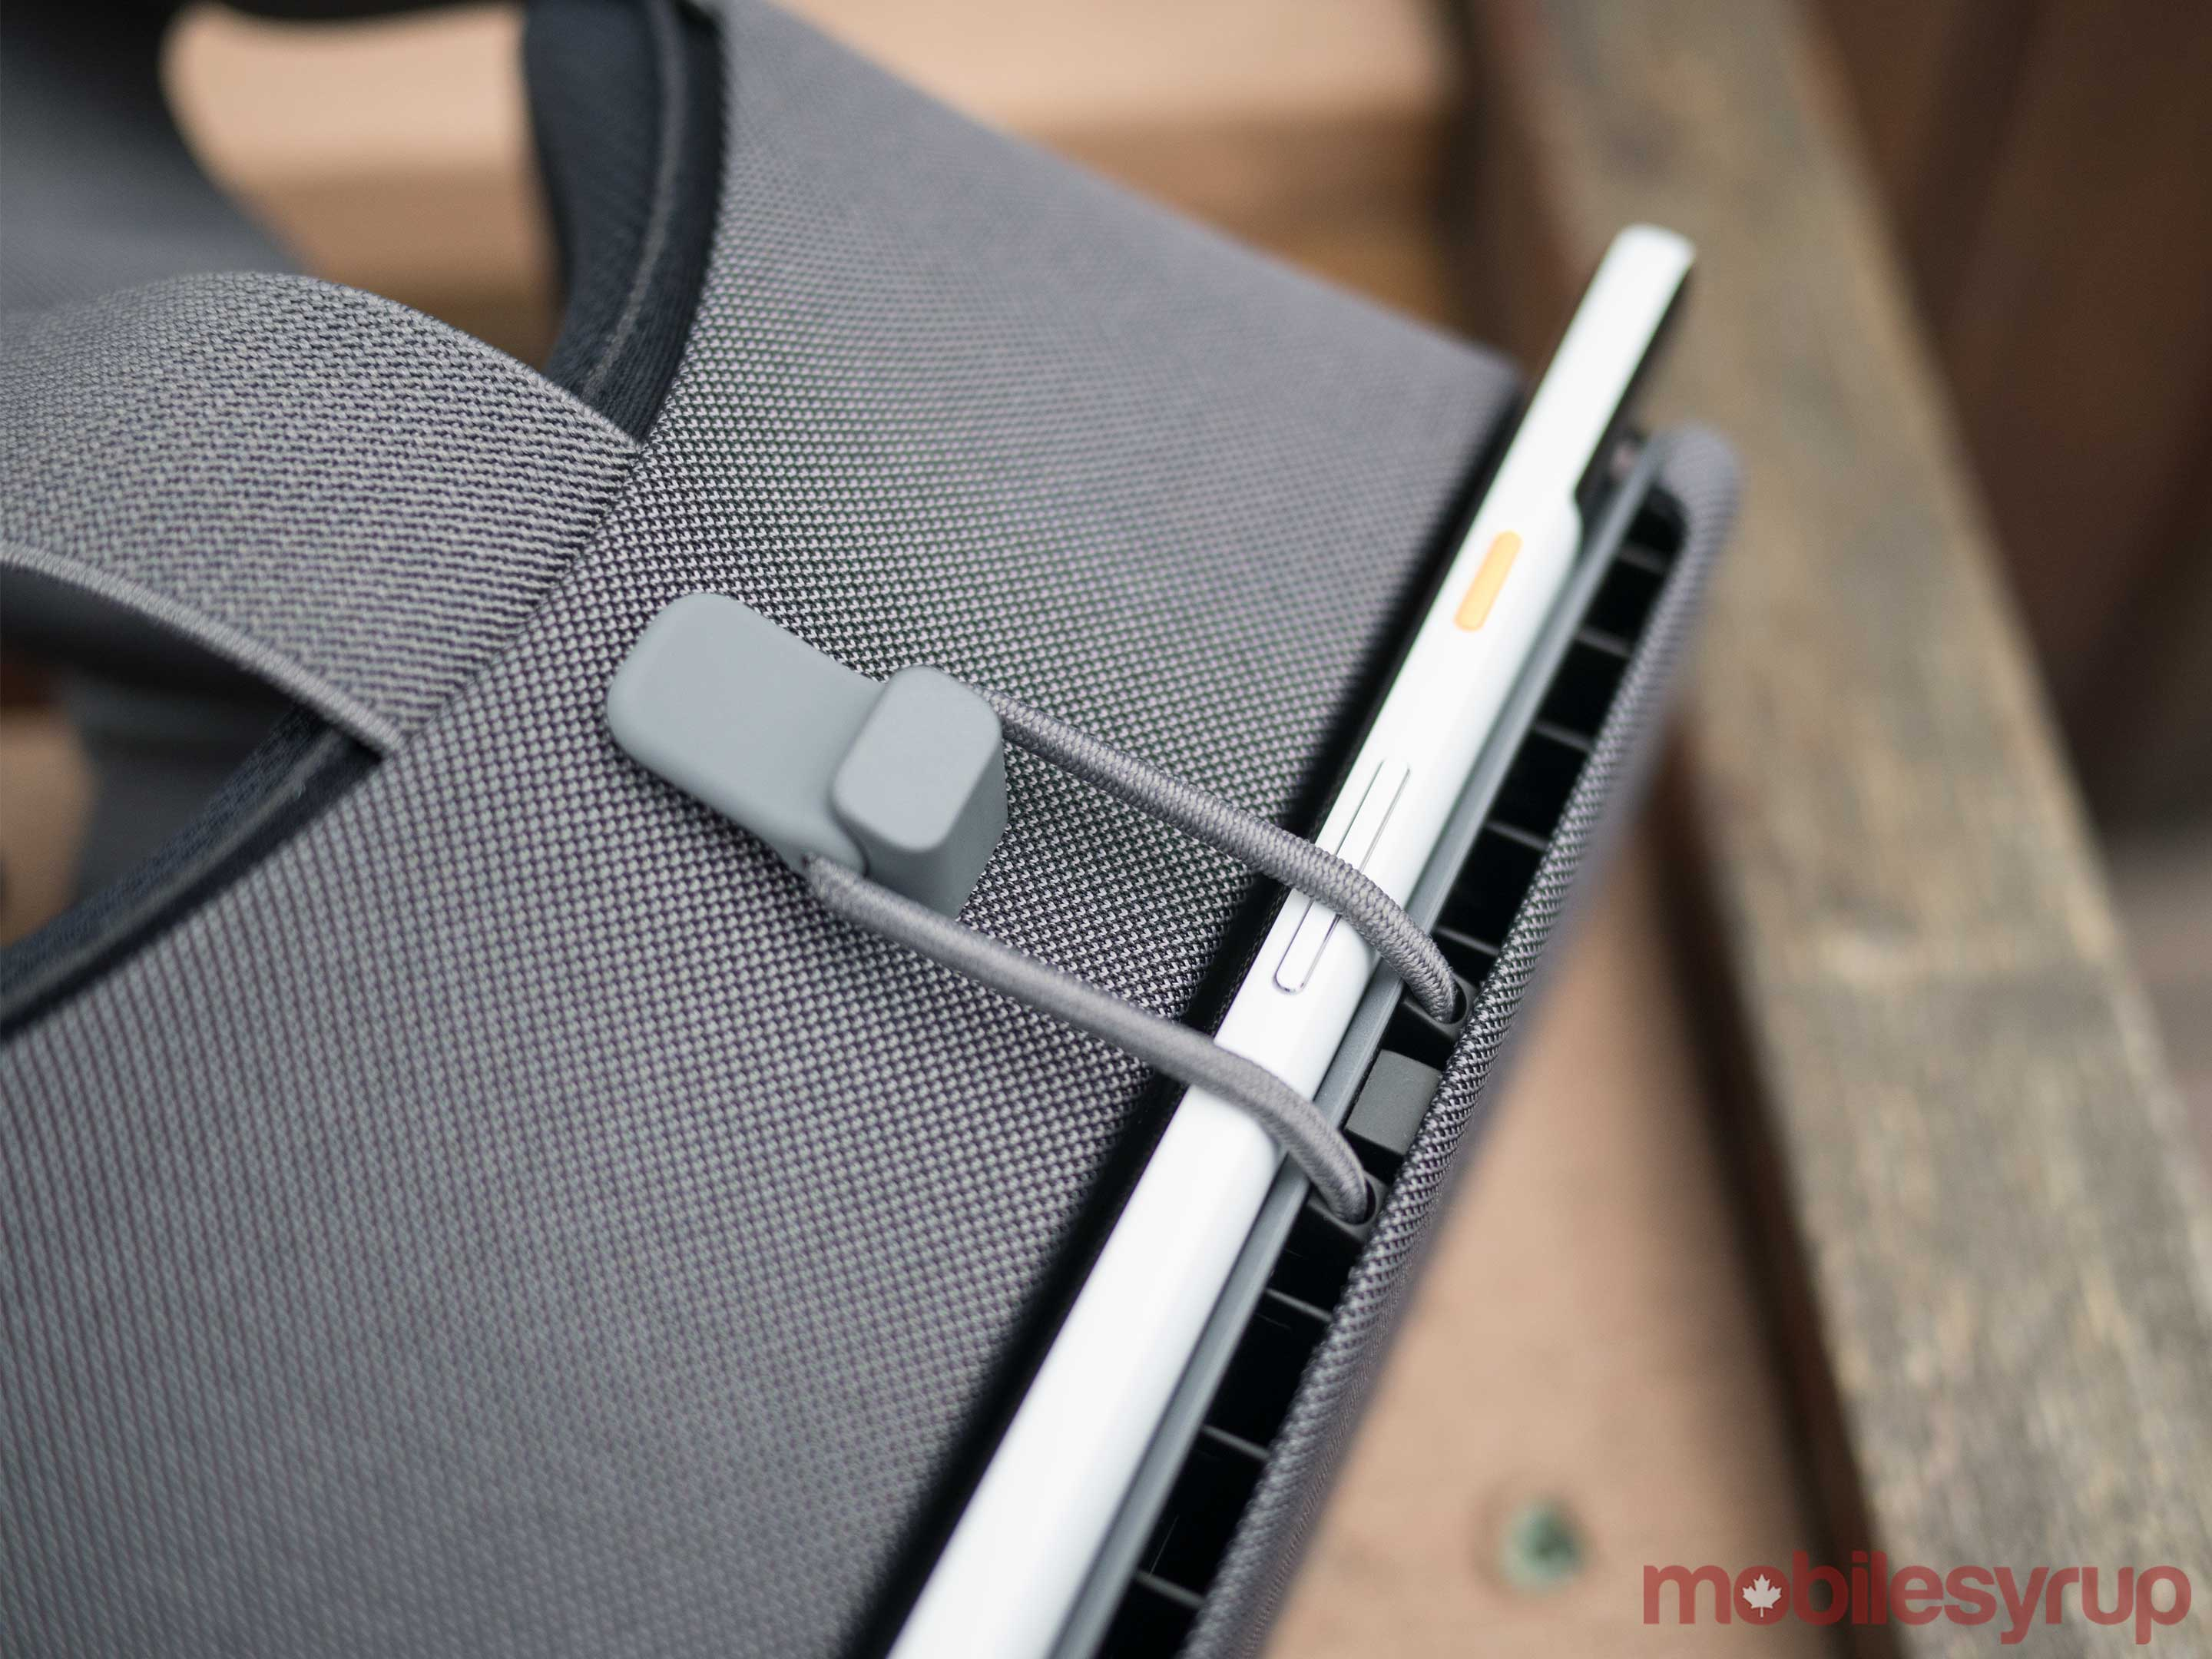 Daydream view strap